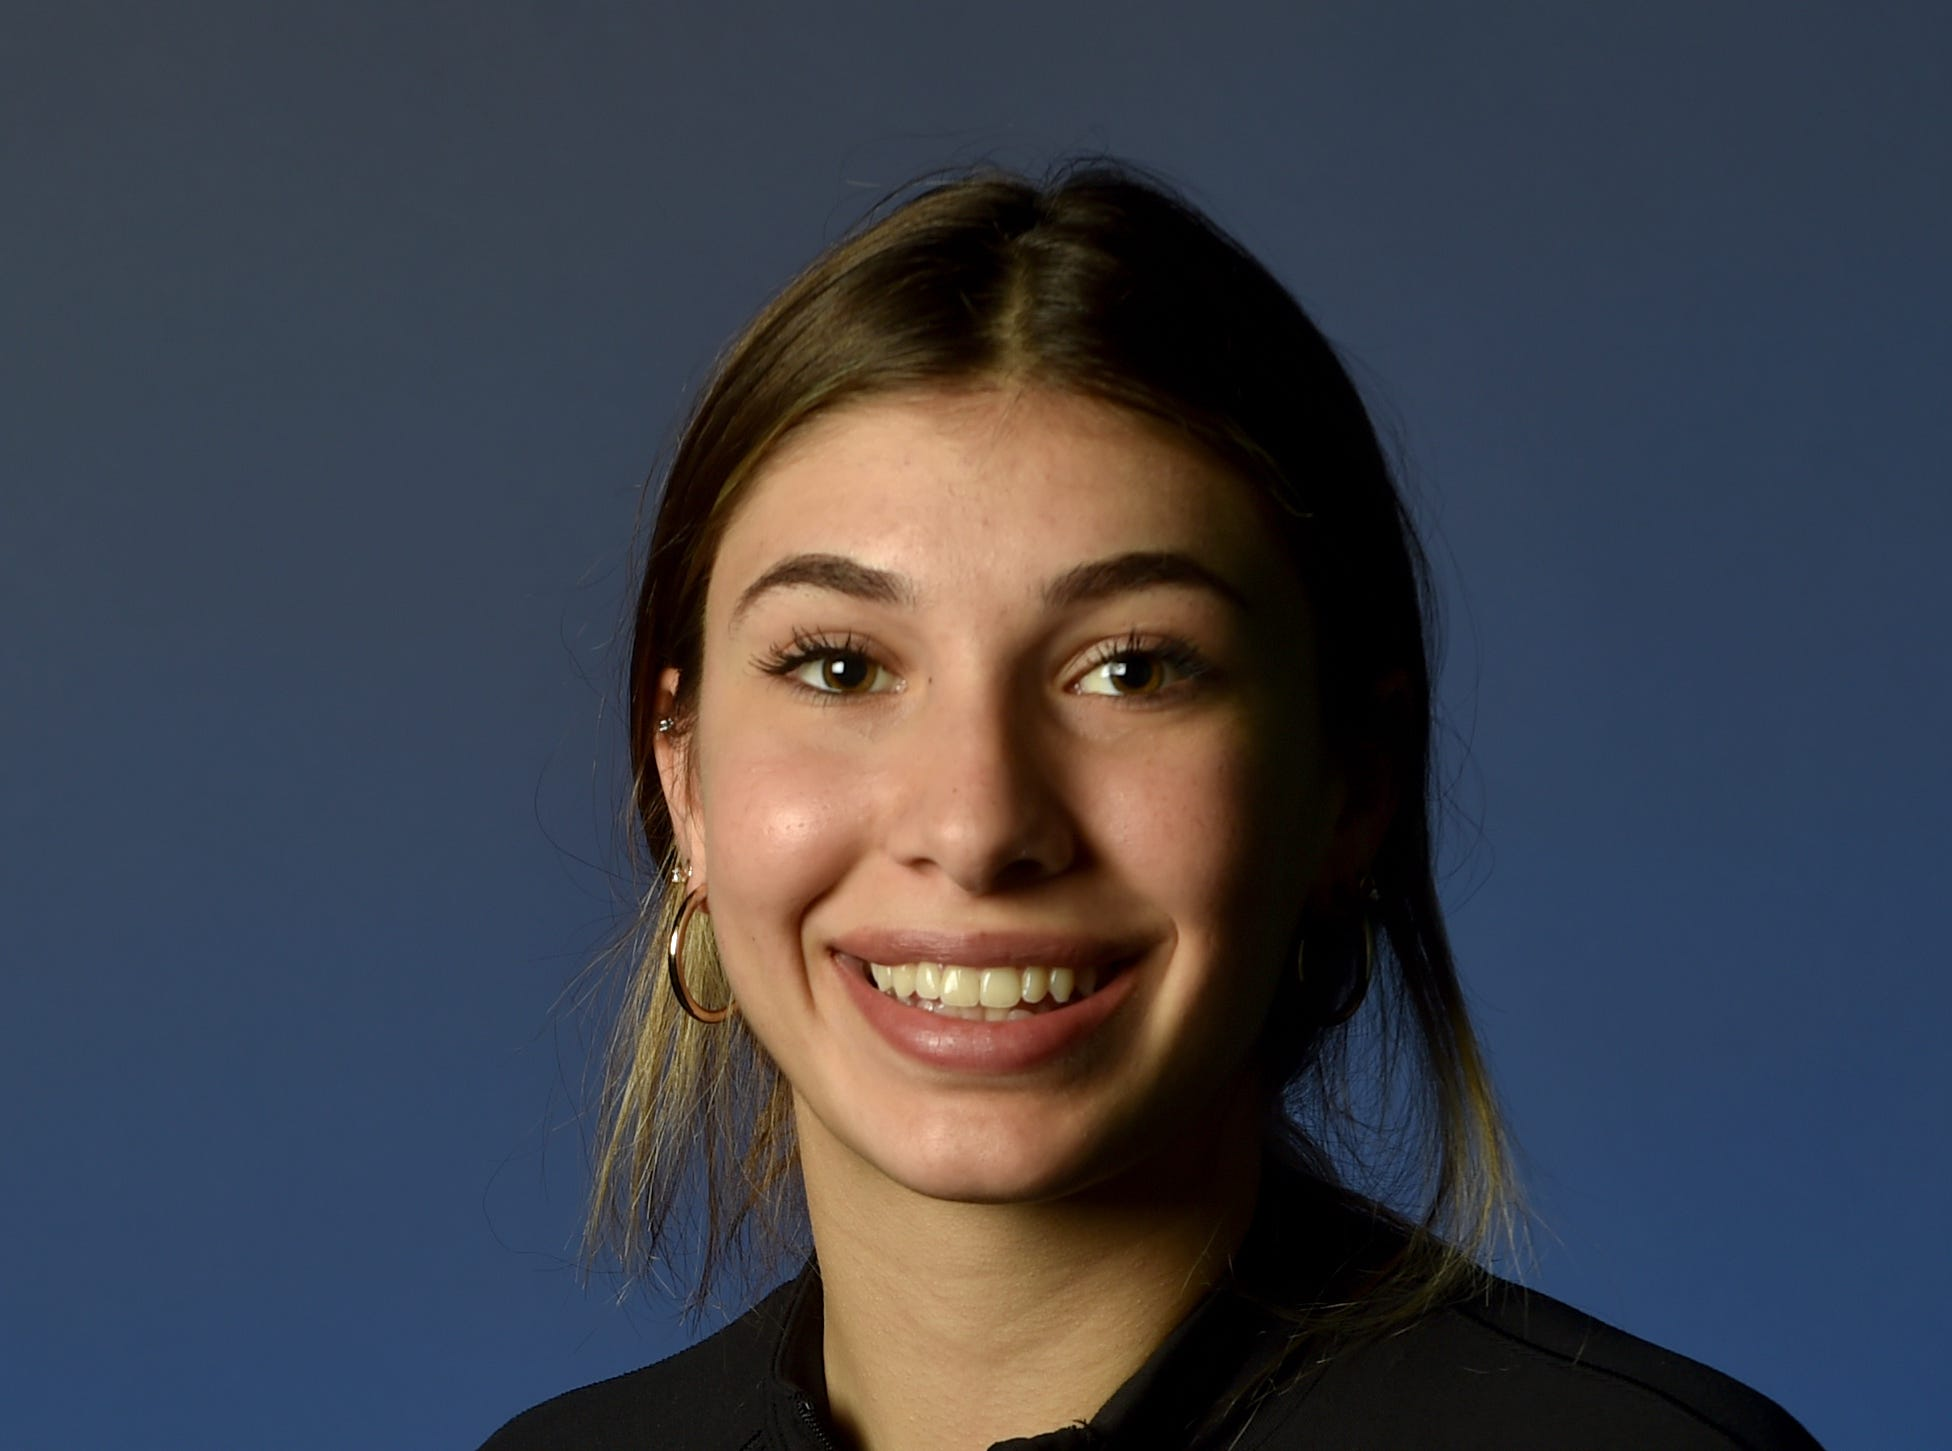 "FIONA MARANGOLA, Newbury Park: The 5-foot-5 midfielder was the two-way engine that powered the Panthers to an unbeaten regular season. The Panthers allowed just 16 goals in their 21 matches, including just one in three postseason games. Marangola added seven assists to her flurry of ball-winning tackles. She also started for Ventura County in the senior all-star game against L.A. County. She could continue playing next year at Cal State San Marcos, but has decided to hang up her cleats. She watches ""Grey's Anatomy,"" eats sushi and listens to Old Dominion. ""Deadpool"" is her favorite movie."